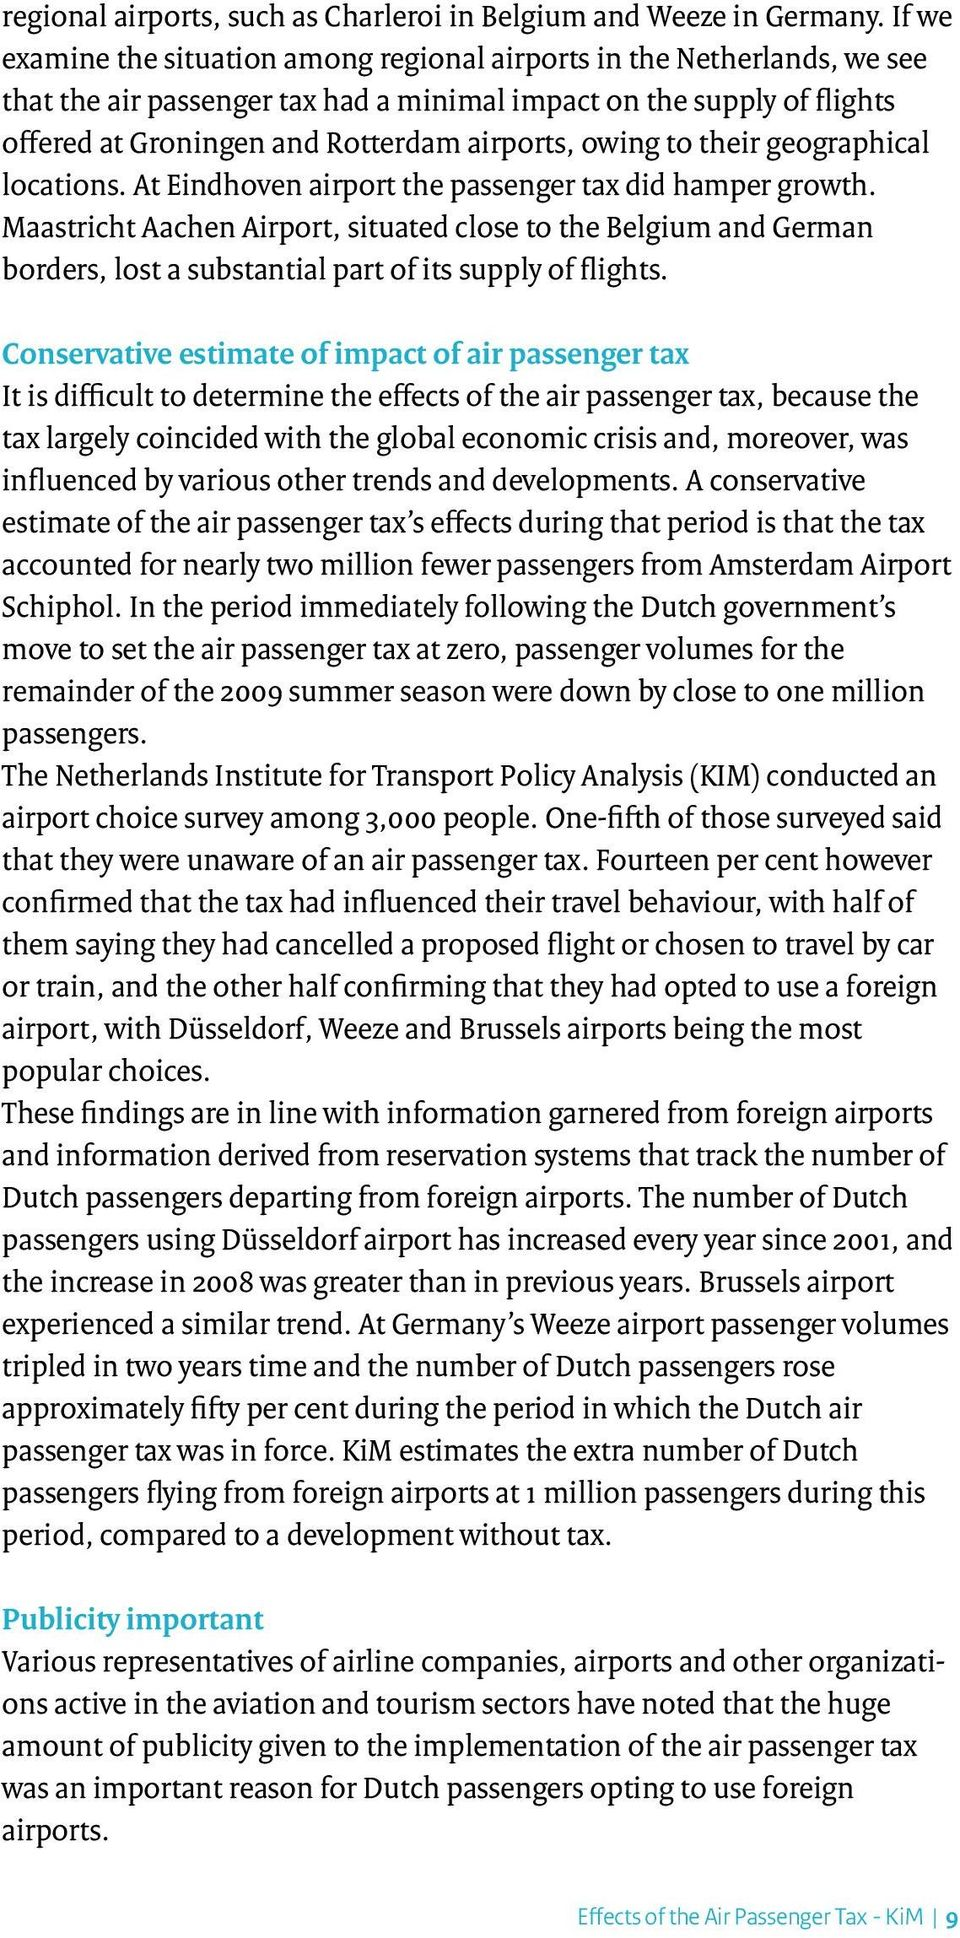 to their geographical locations. At Eindhoven airport the passenger tax did hamper growth.